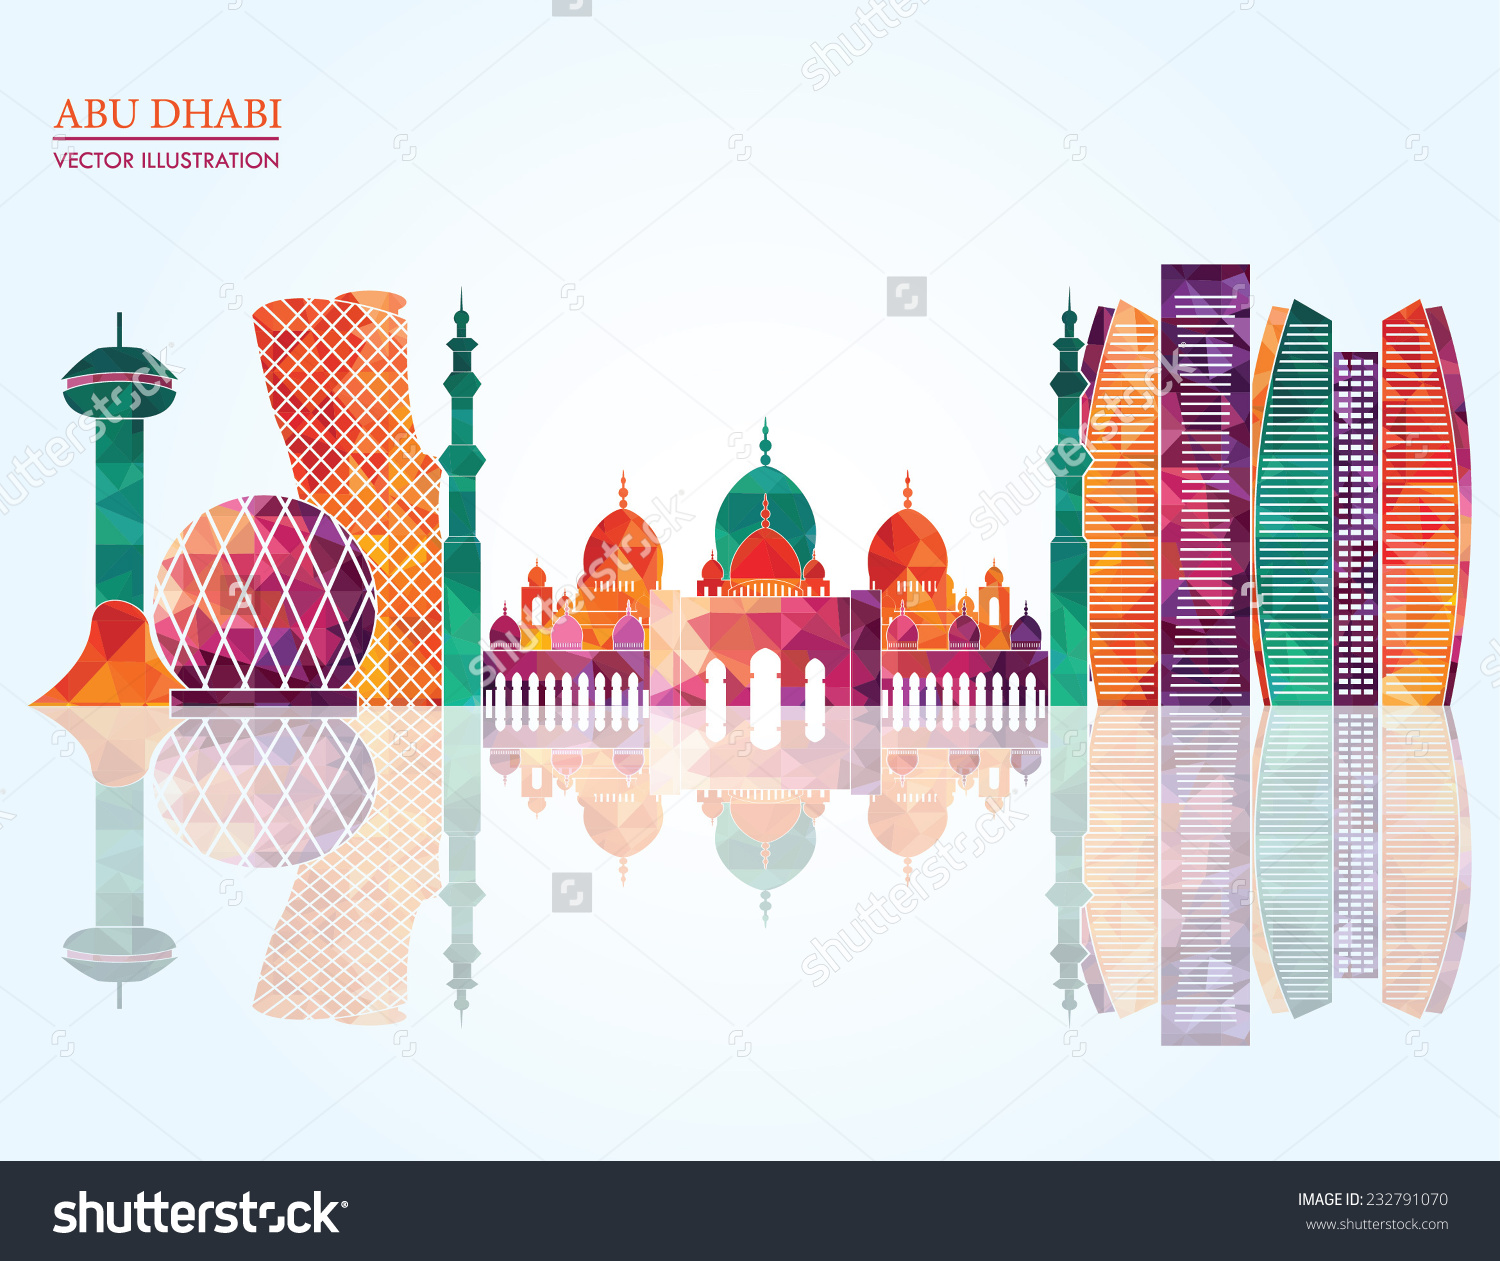 Abu Dhabi Skyline Vector Illustration Stock Vector 232791070.